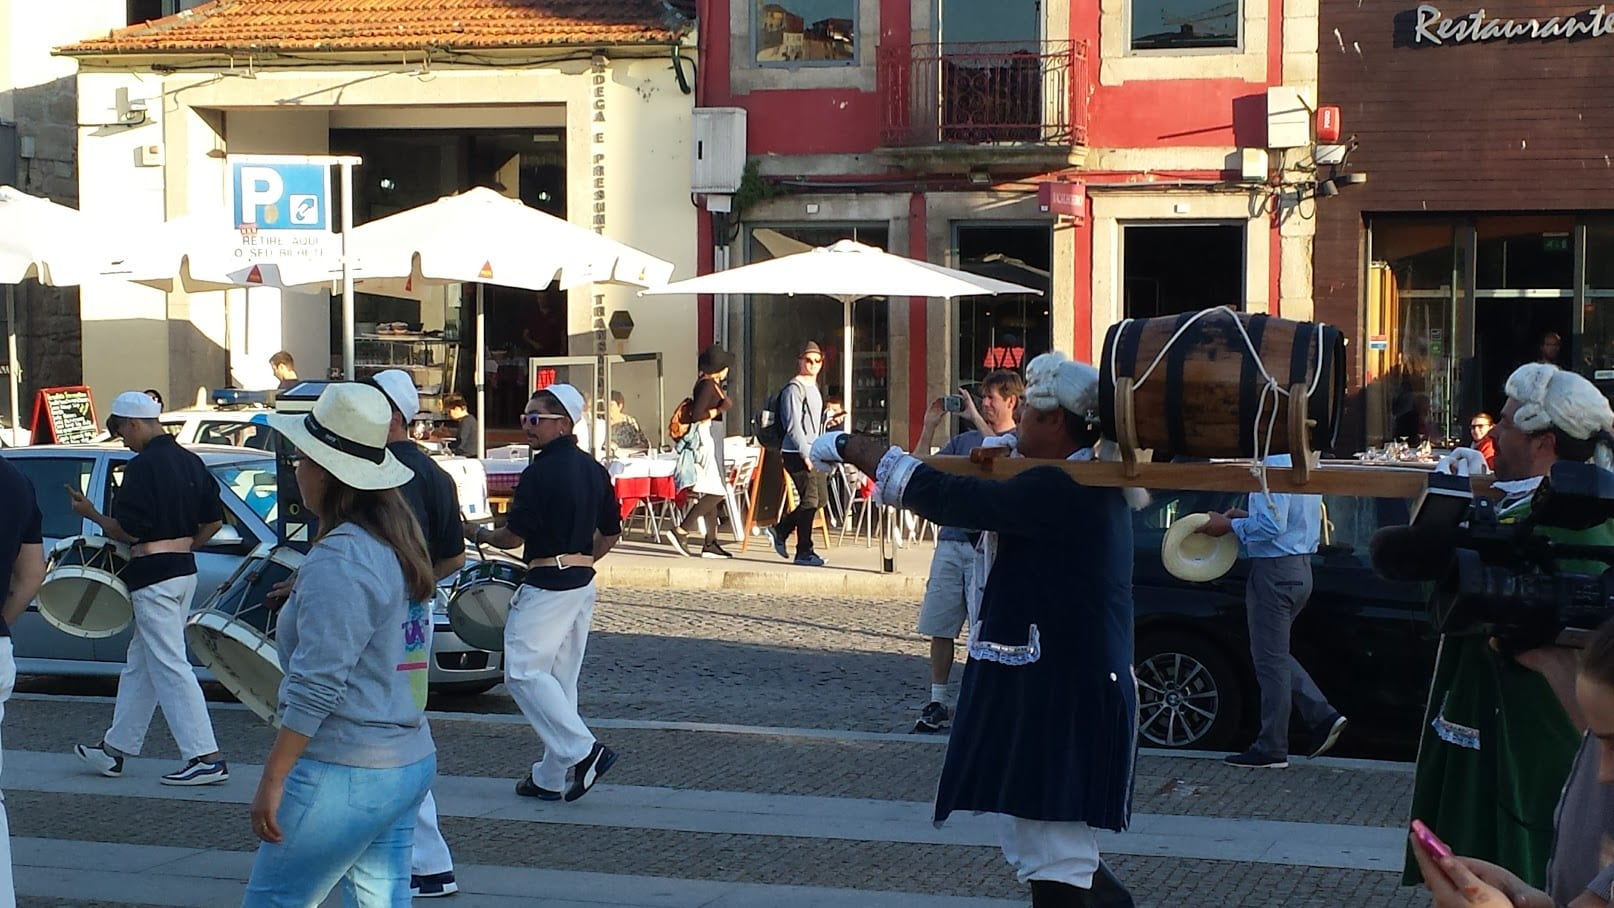 A procession carrying a cask of Port we witnessed whilst spending a day in Porto